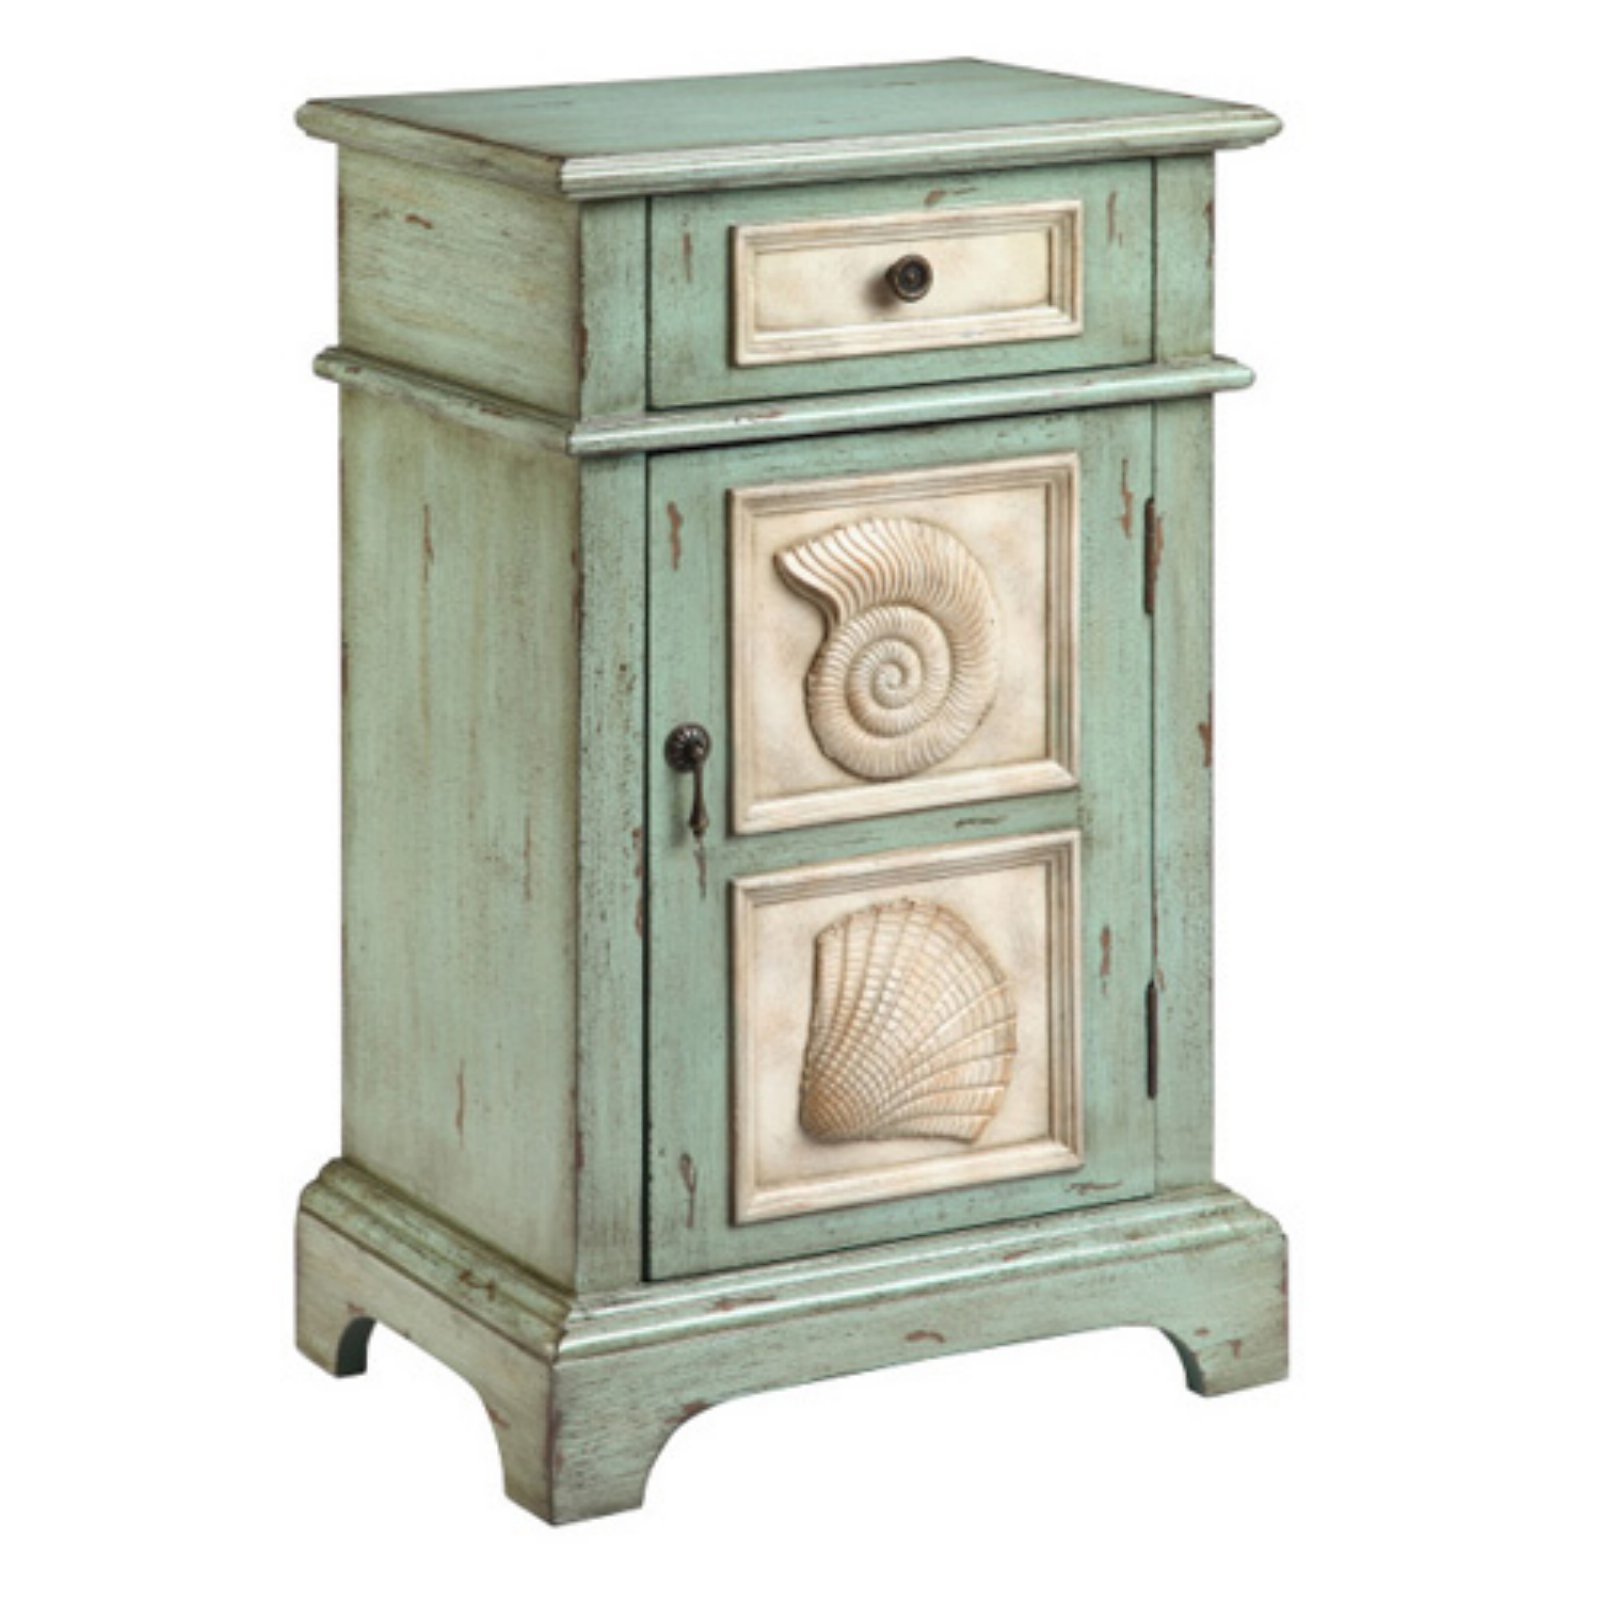 Stein World Hastings Chairside Table